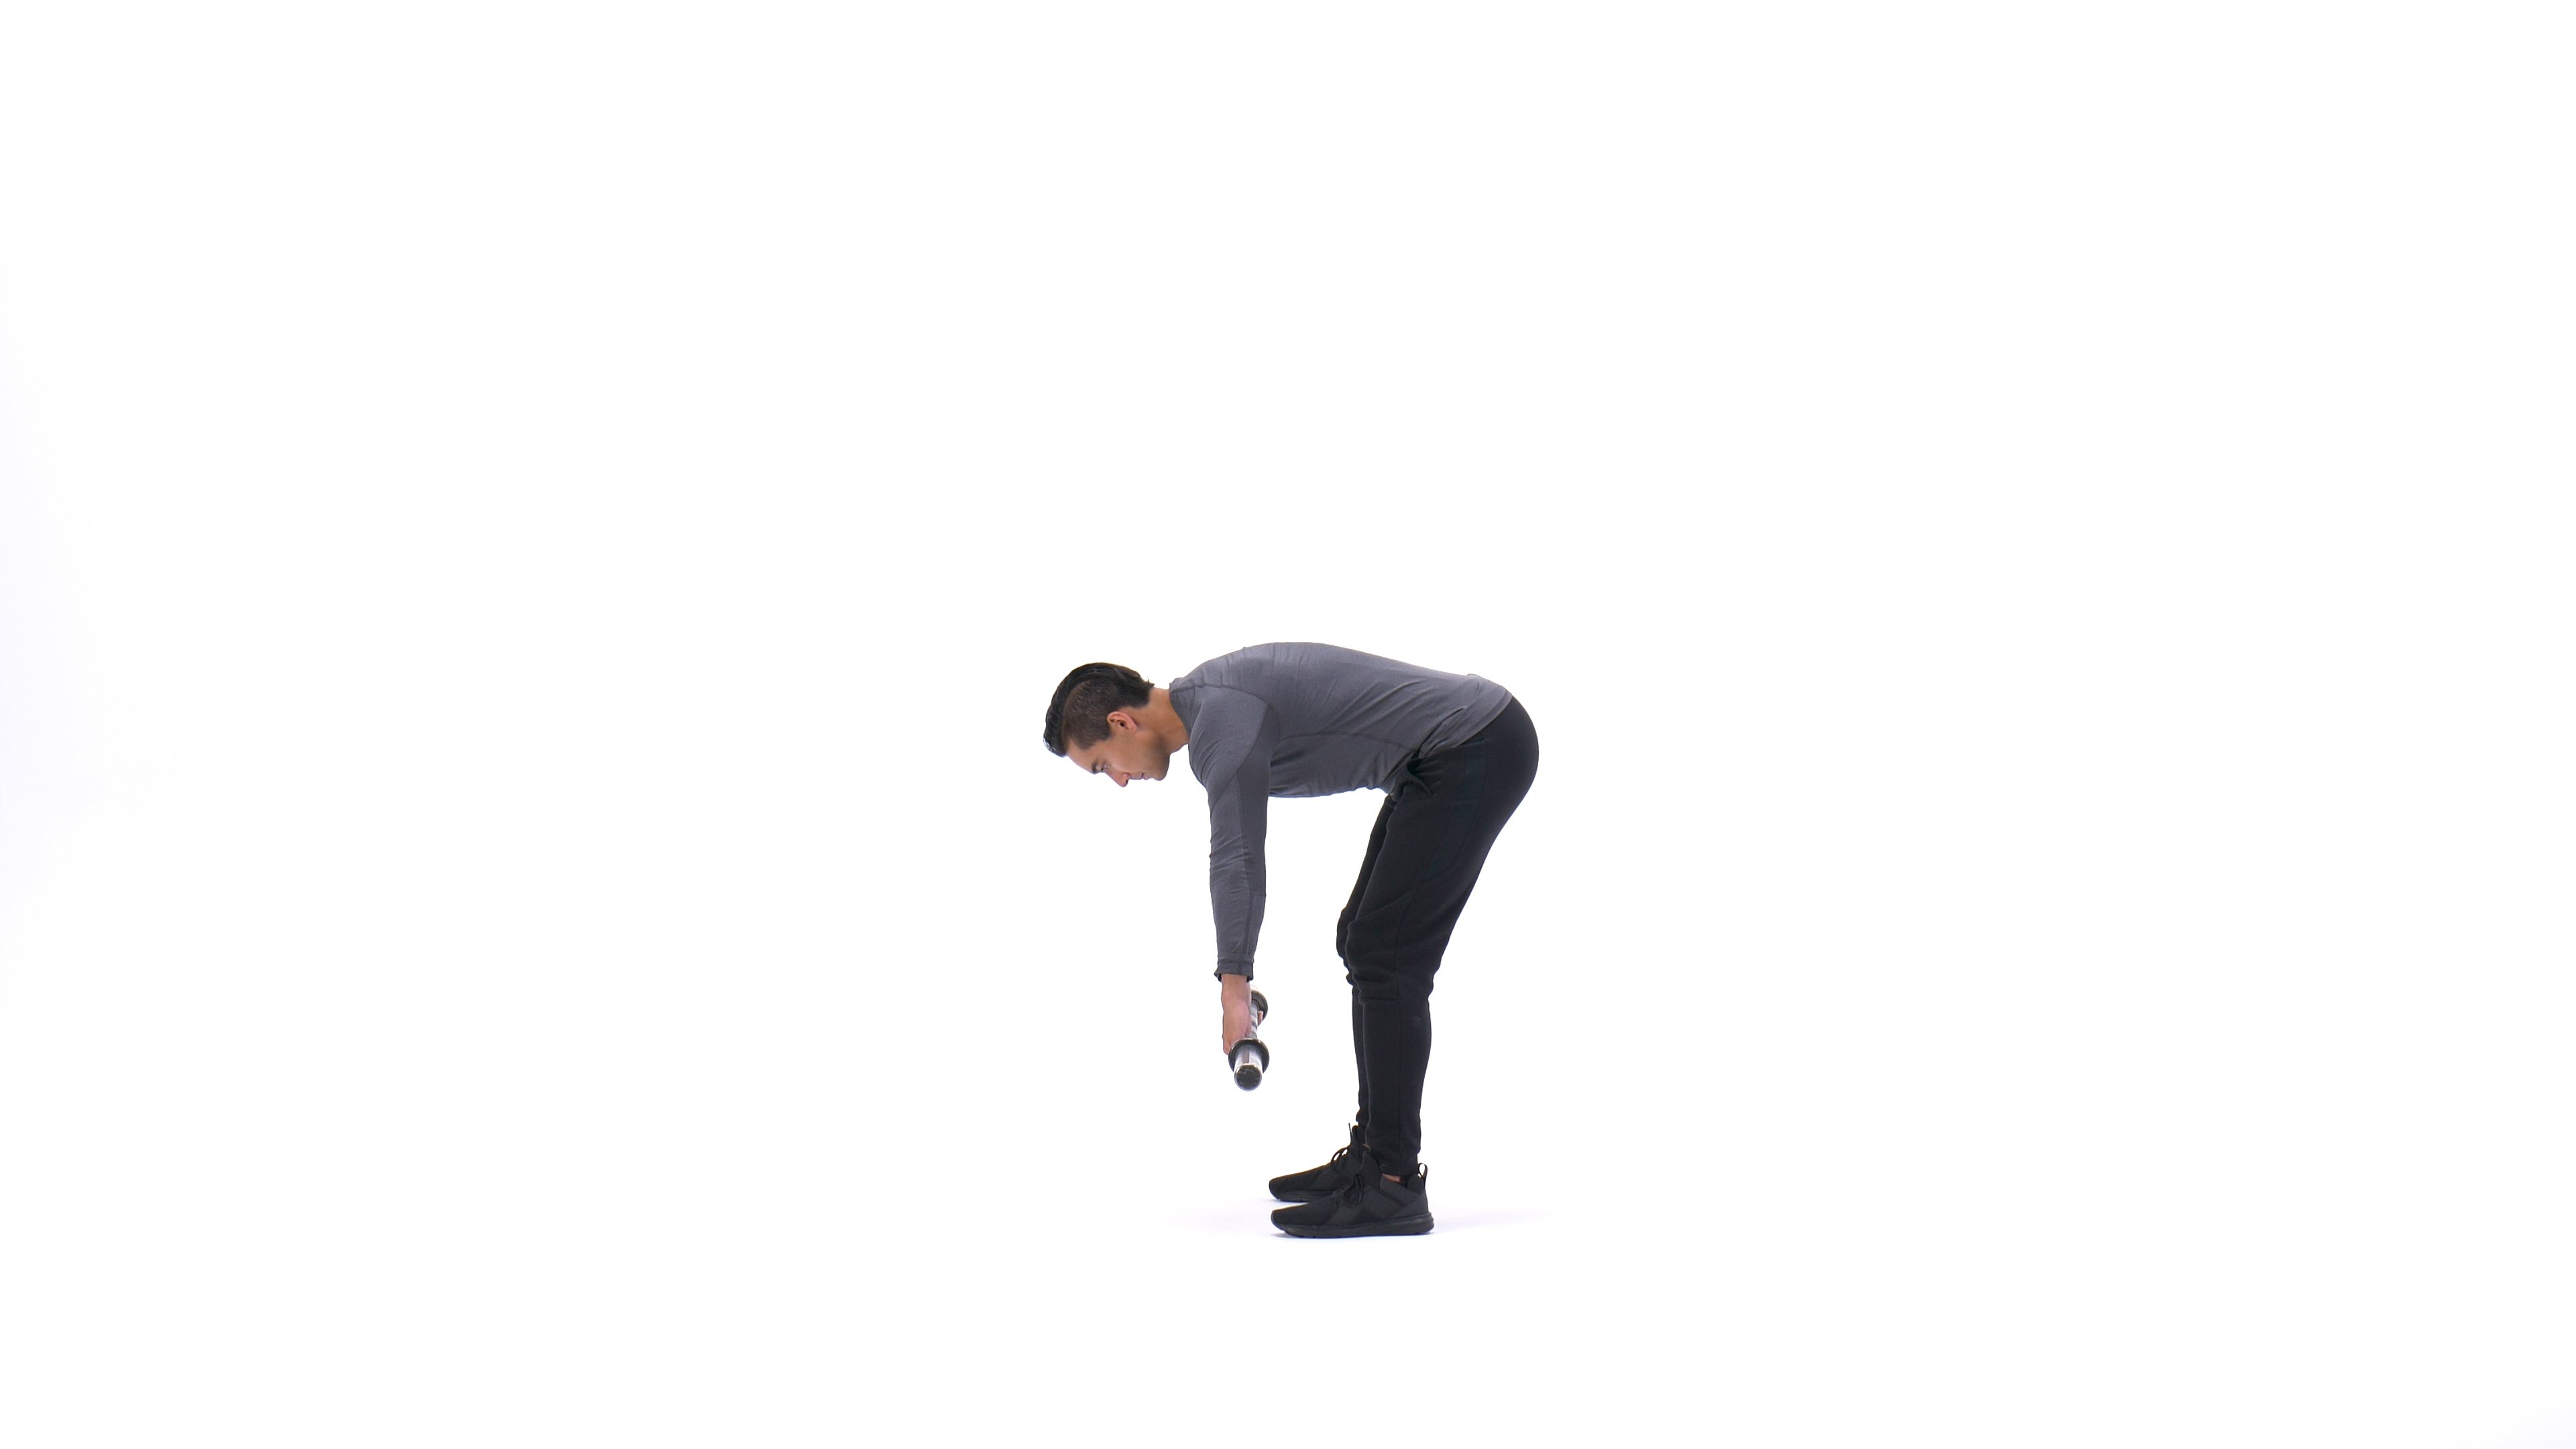 Barbell rear delt bent-over row image